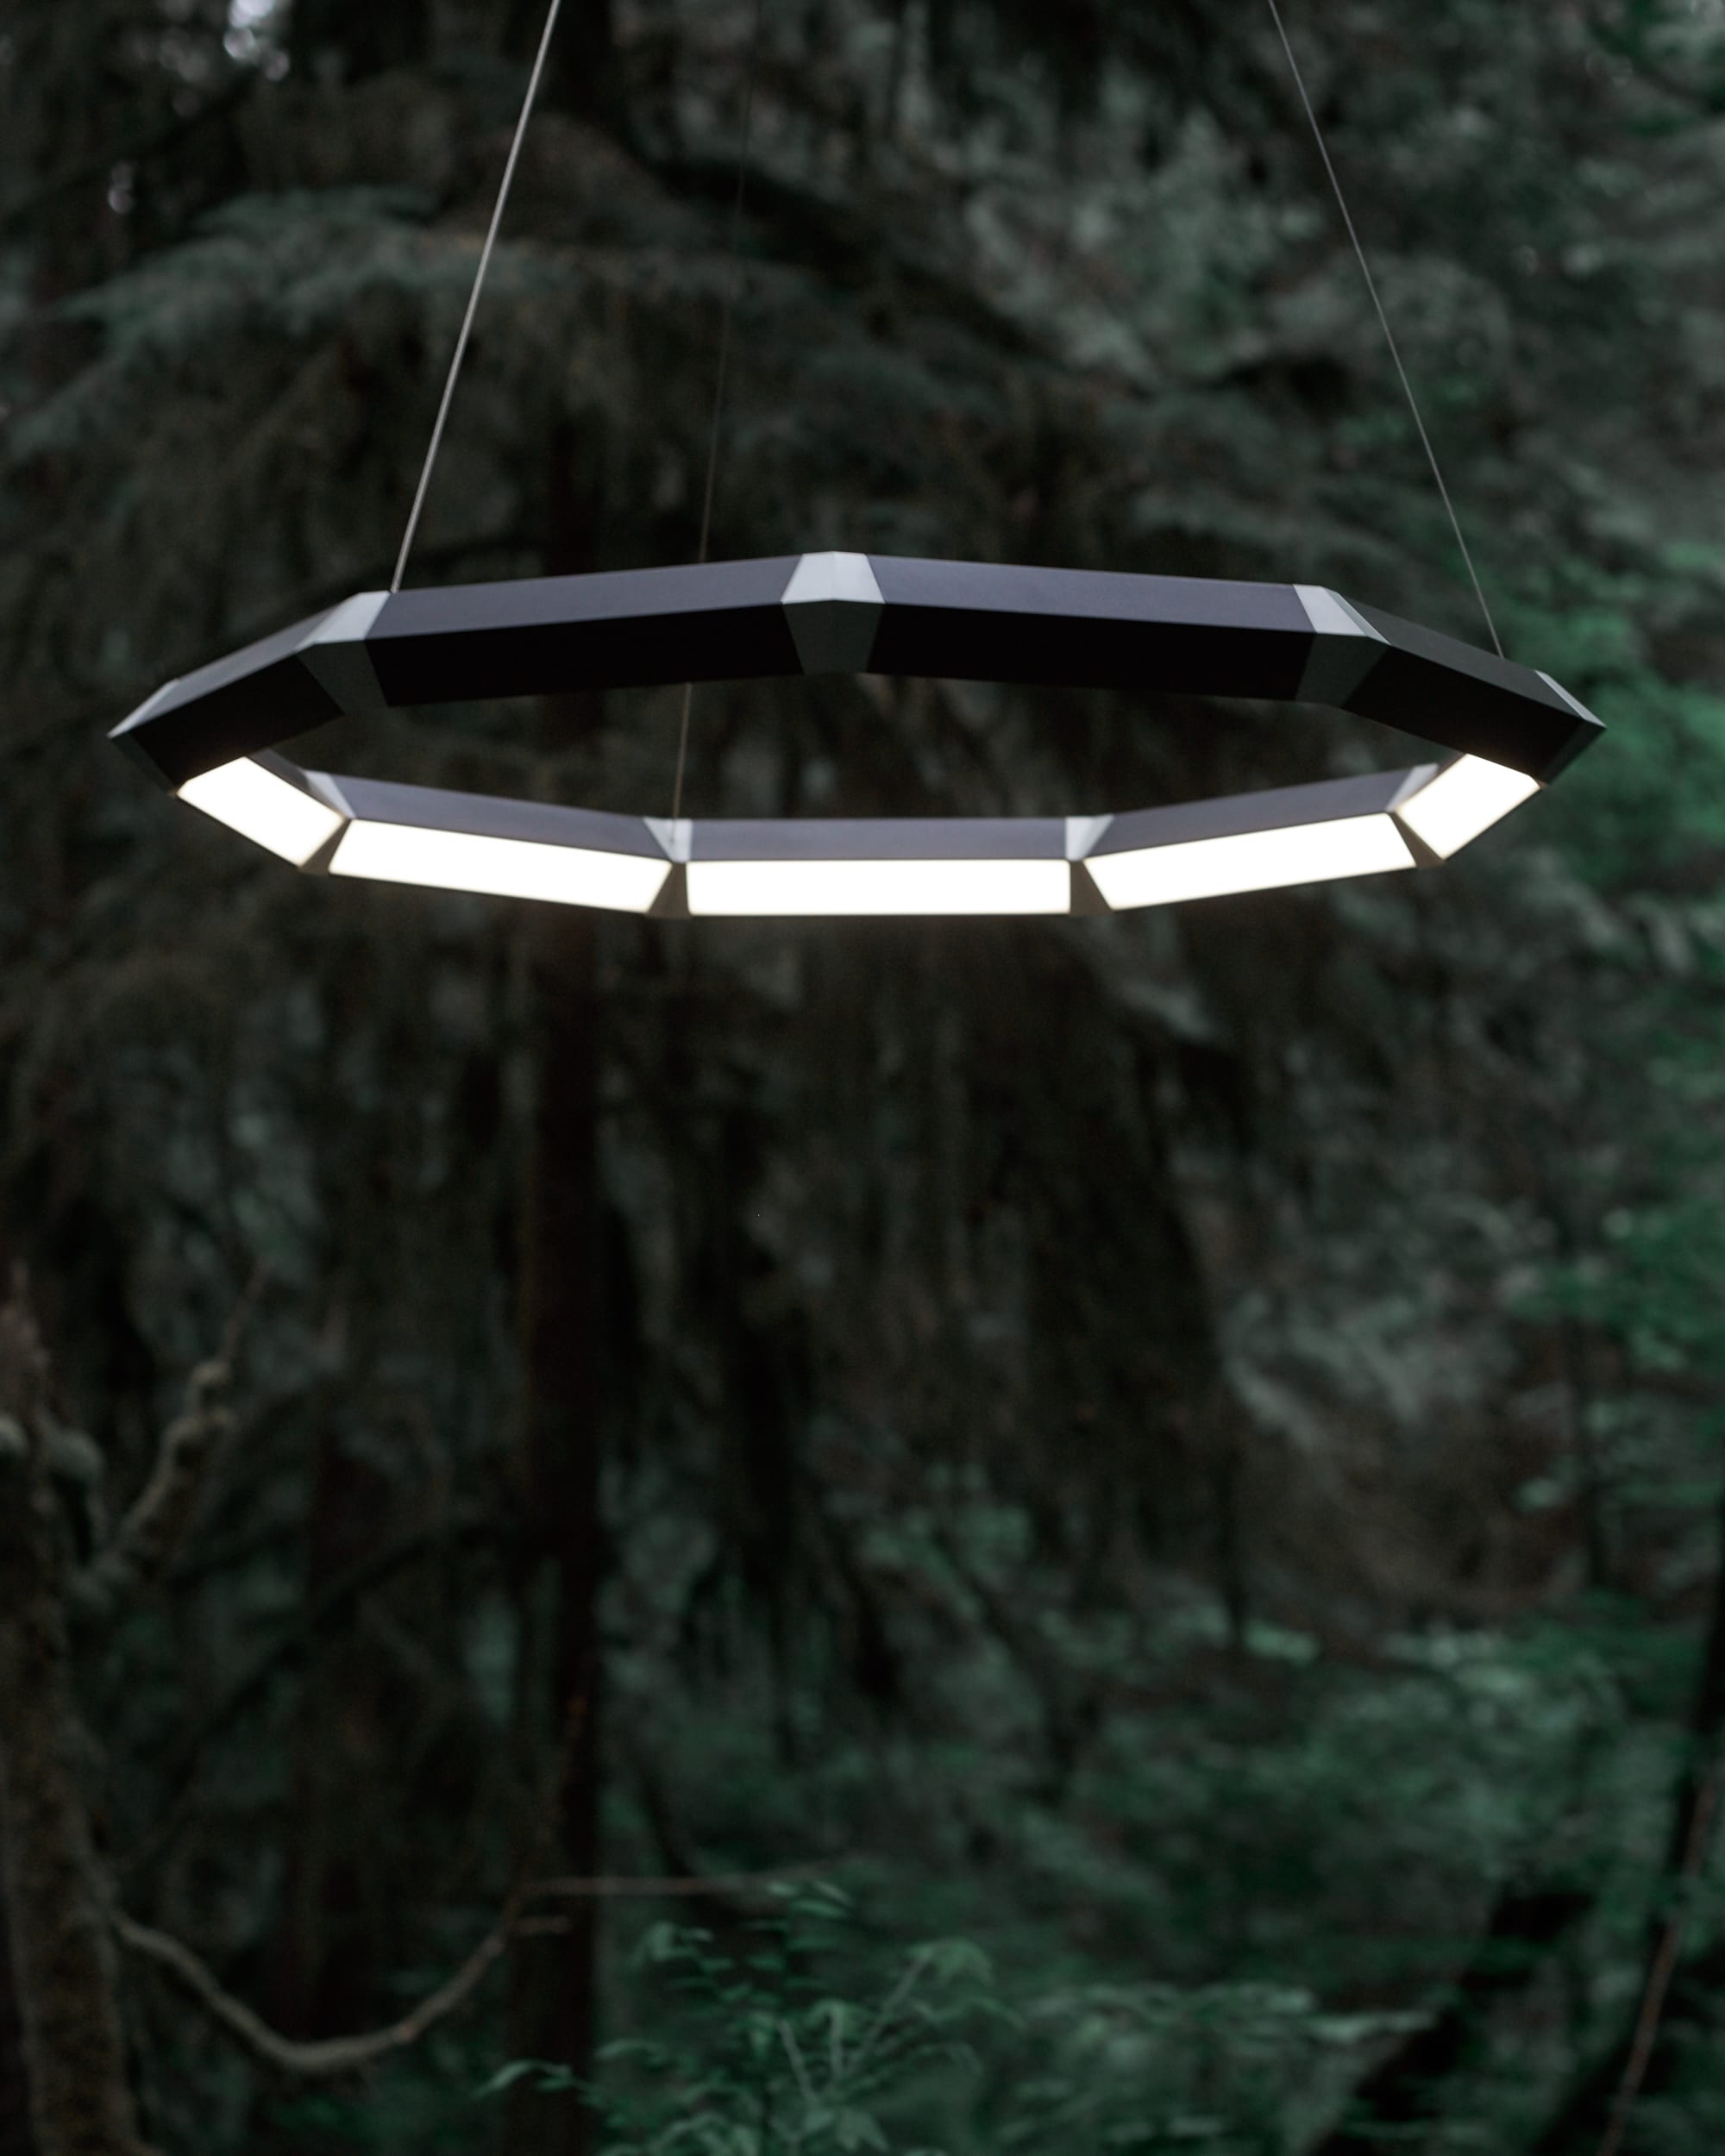 Pendants by Karice seen at Vancouver, Vancouver - Diamond Luxennea M series